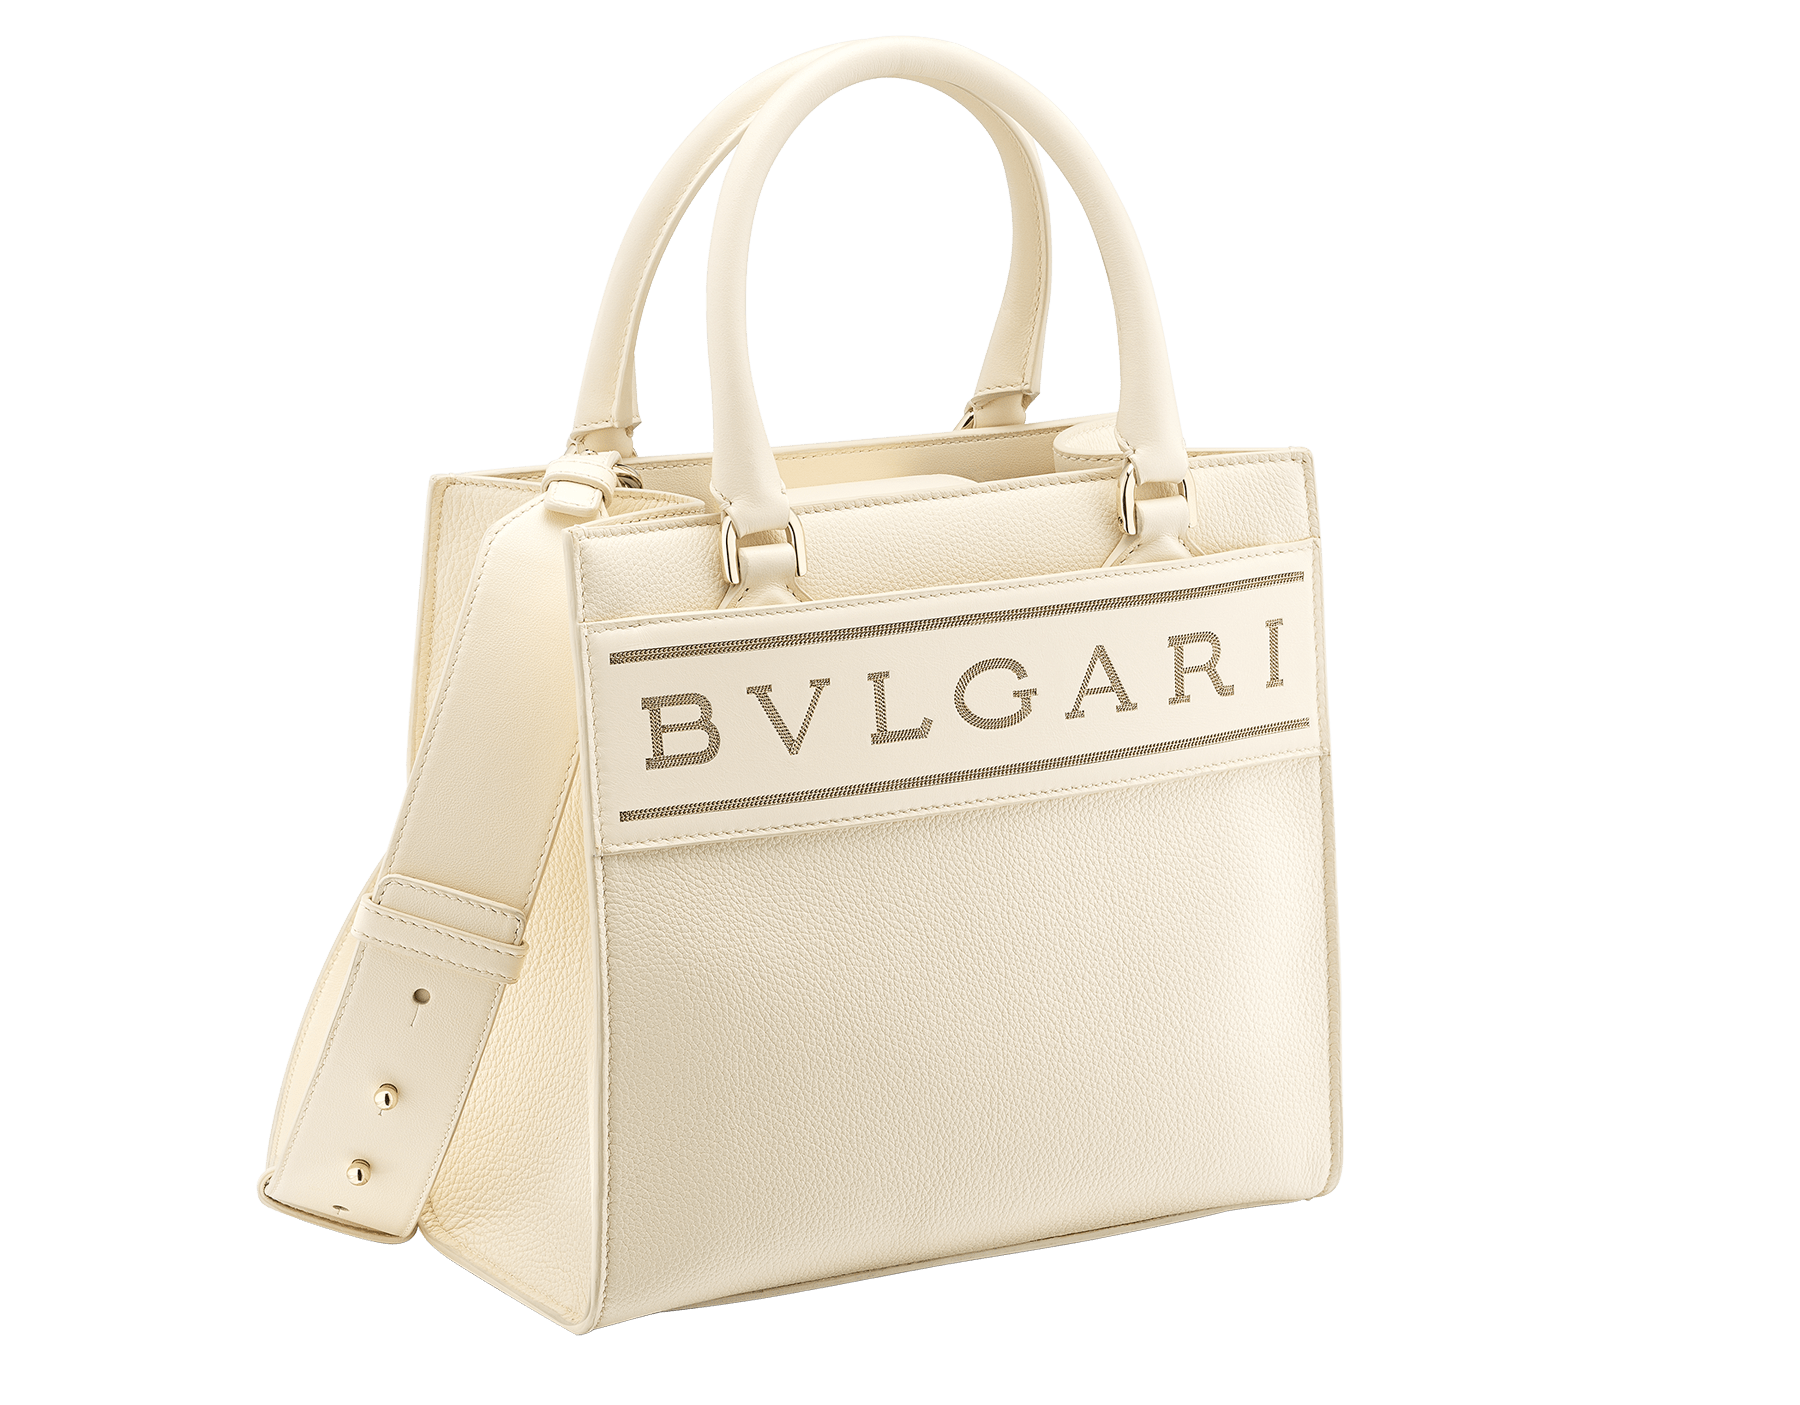 """Bvlgari Logo"" small tote bag in Ivory Opal white calf leather, with Beet Amethyst purple grosgrain inner lining. Bvlgari logo featuring light gold-plated brass chain inserts on the Ivory Opal white calf leather. BVL-1159-CL image 2"